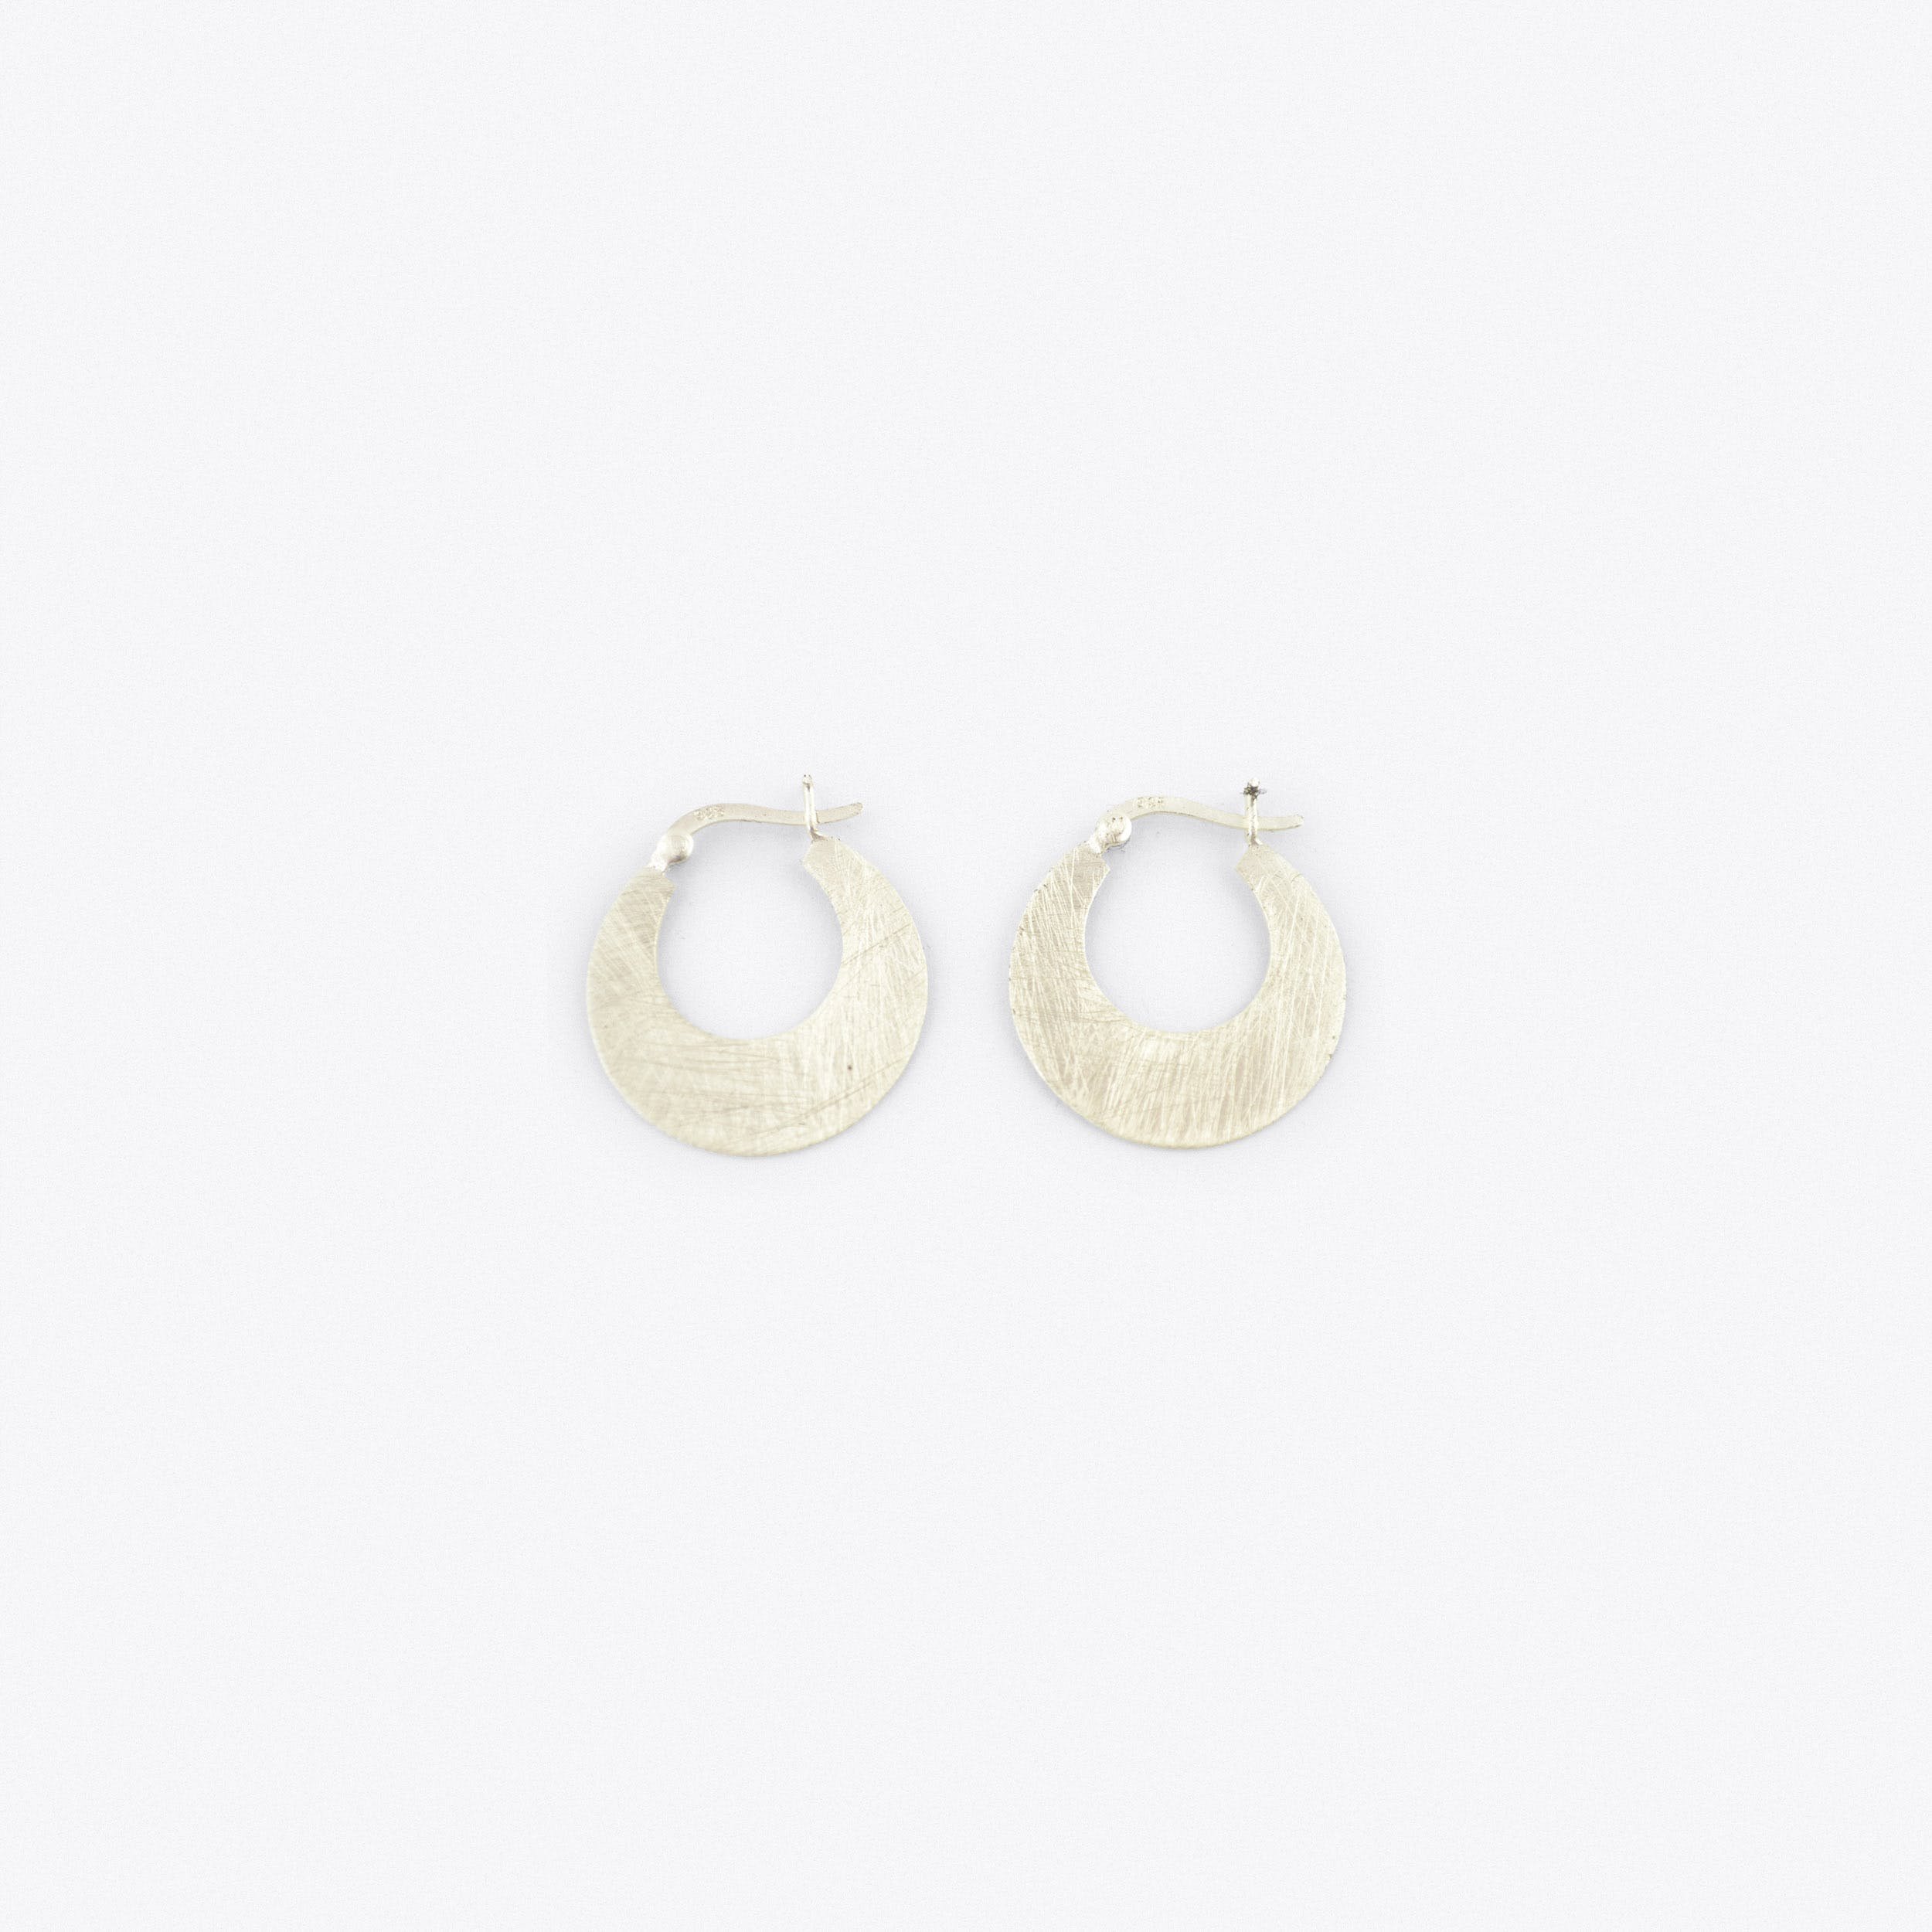 Brushed Finish Sterling Silver Bohemian Hoop Earrings